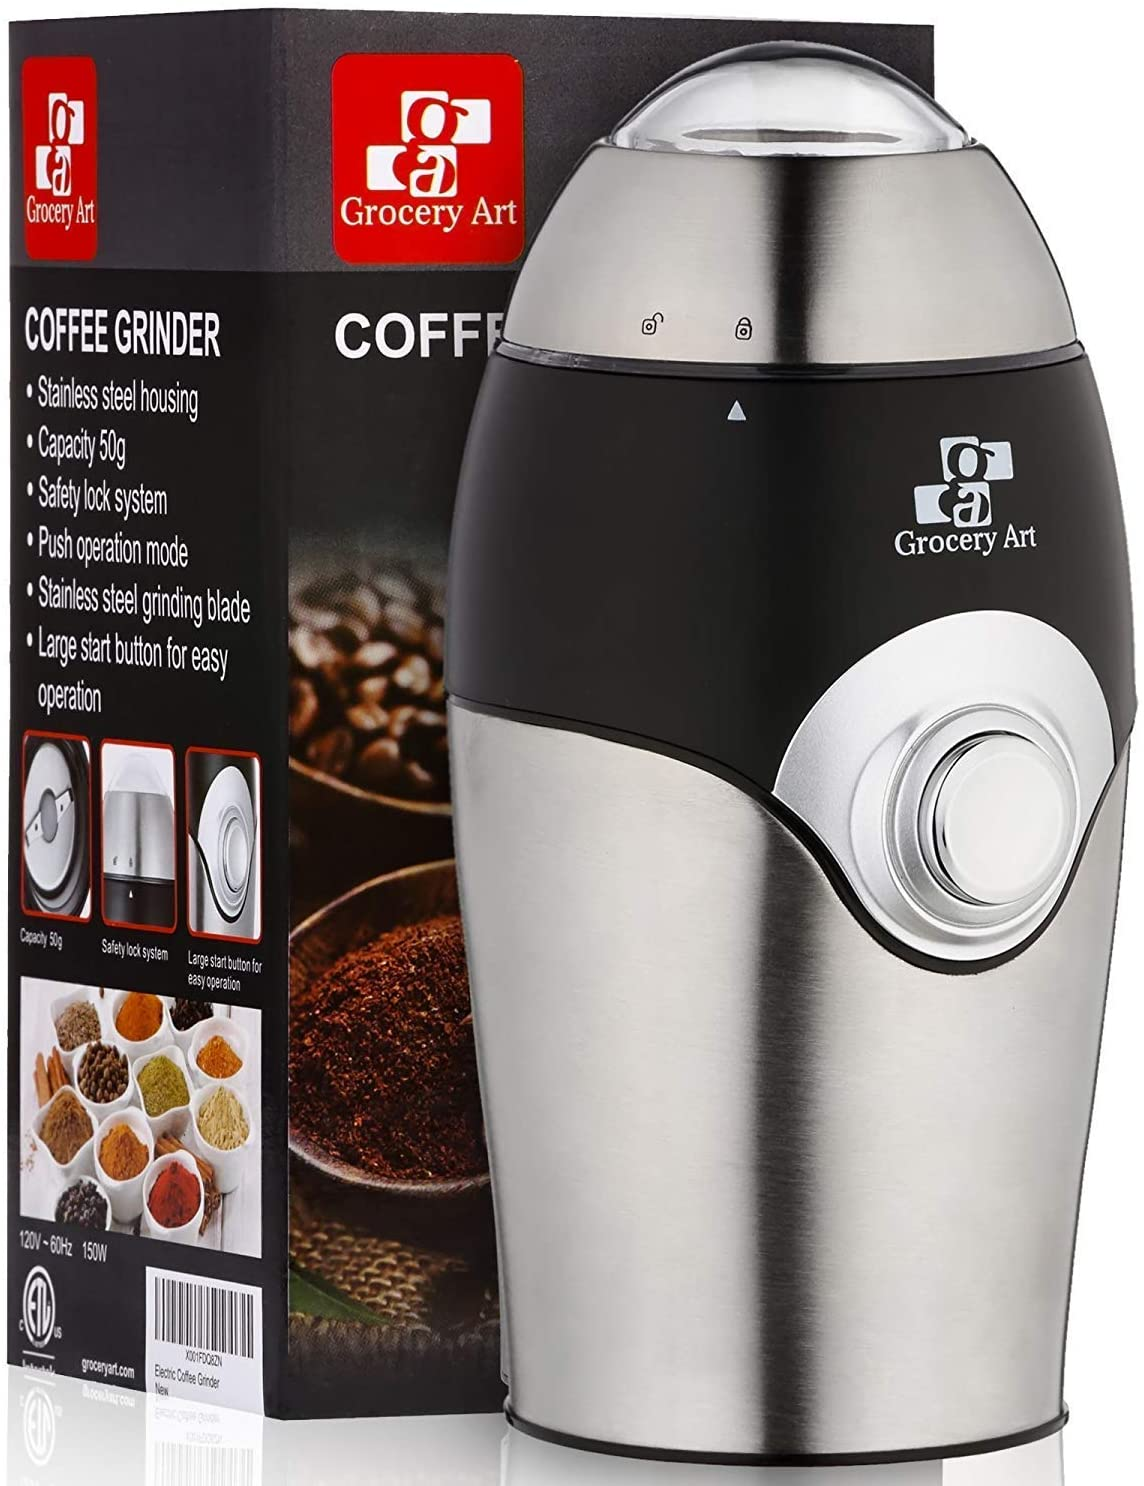 Coffee Grinder Electric - Simple Touch Small & Compact Blade Mill - Automatic Grinding Tool Machine Whole Coffee Beans, Spices, Herbs & Nuts